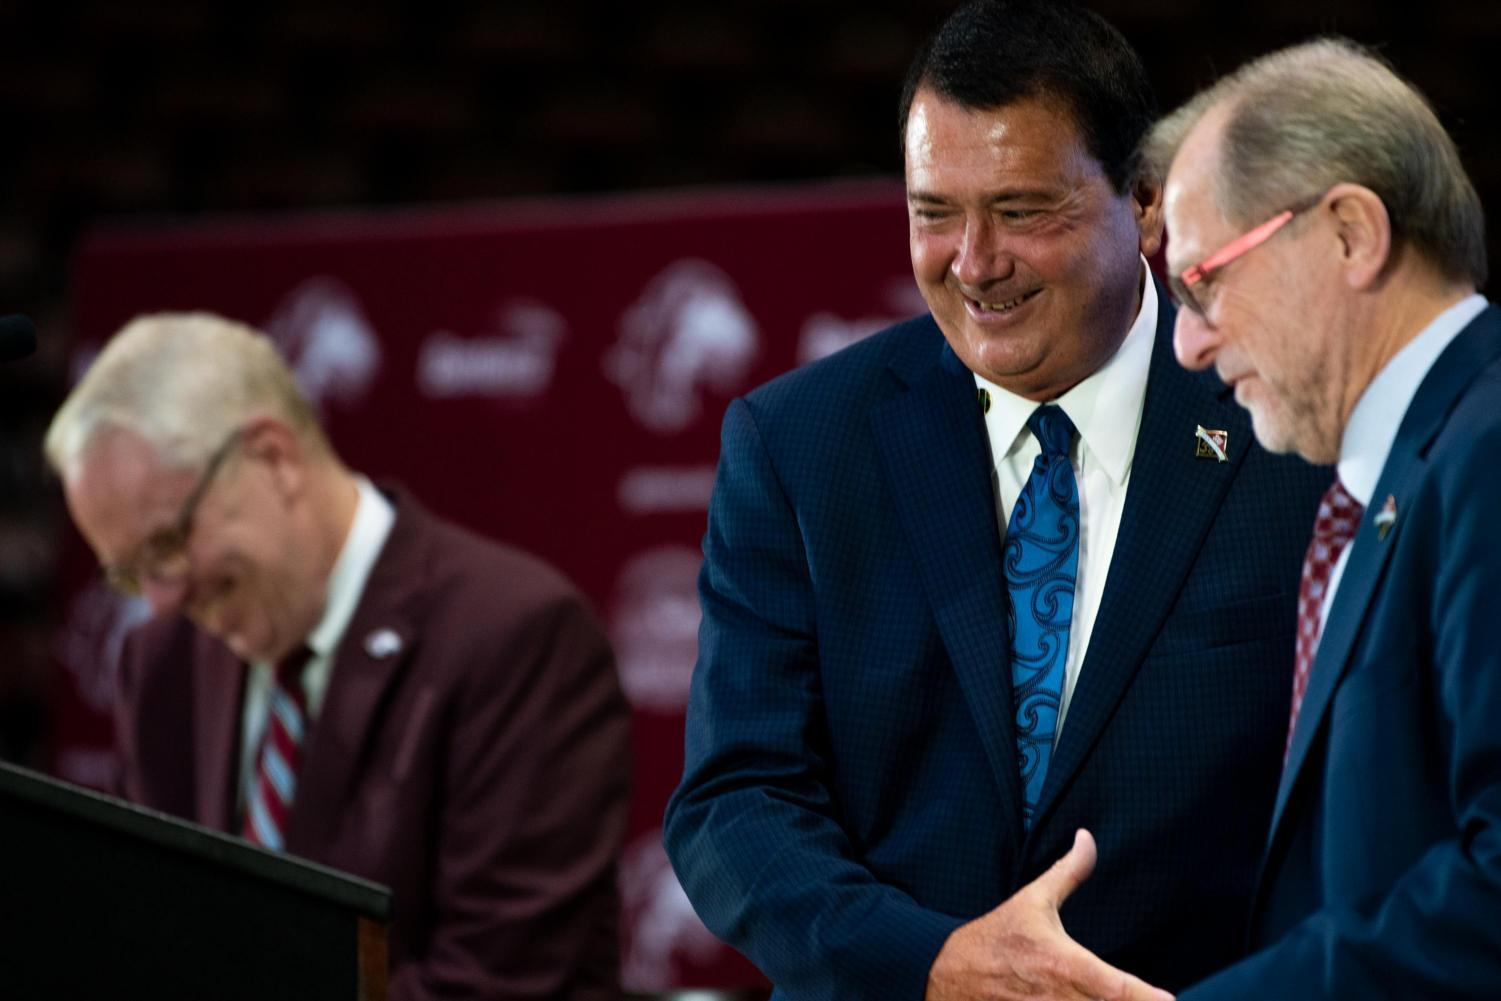 Interim Chancellor John Dunn and Jeff May, President and CEO of Banterra Bank shake hands on Thursday, March 16, 2019 during the press conference for the Arena naming-rights agreement inside the Banterra Center.